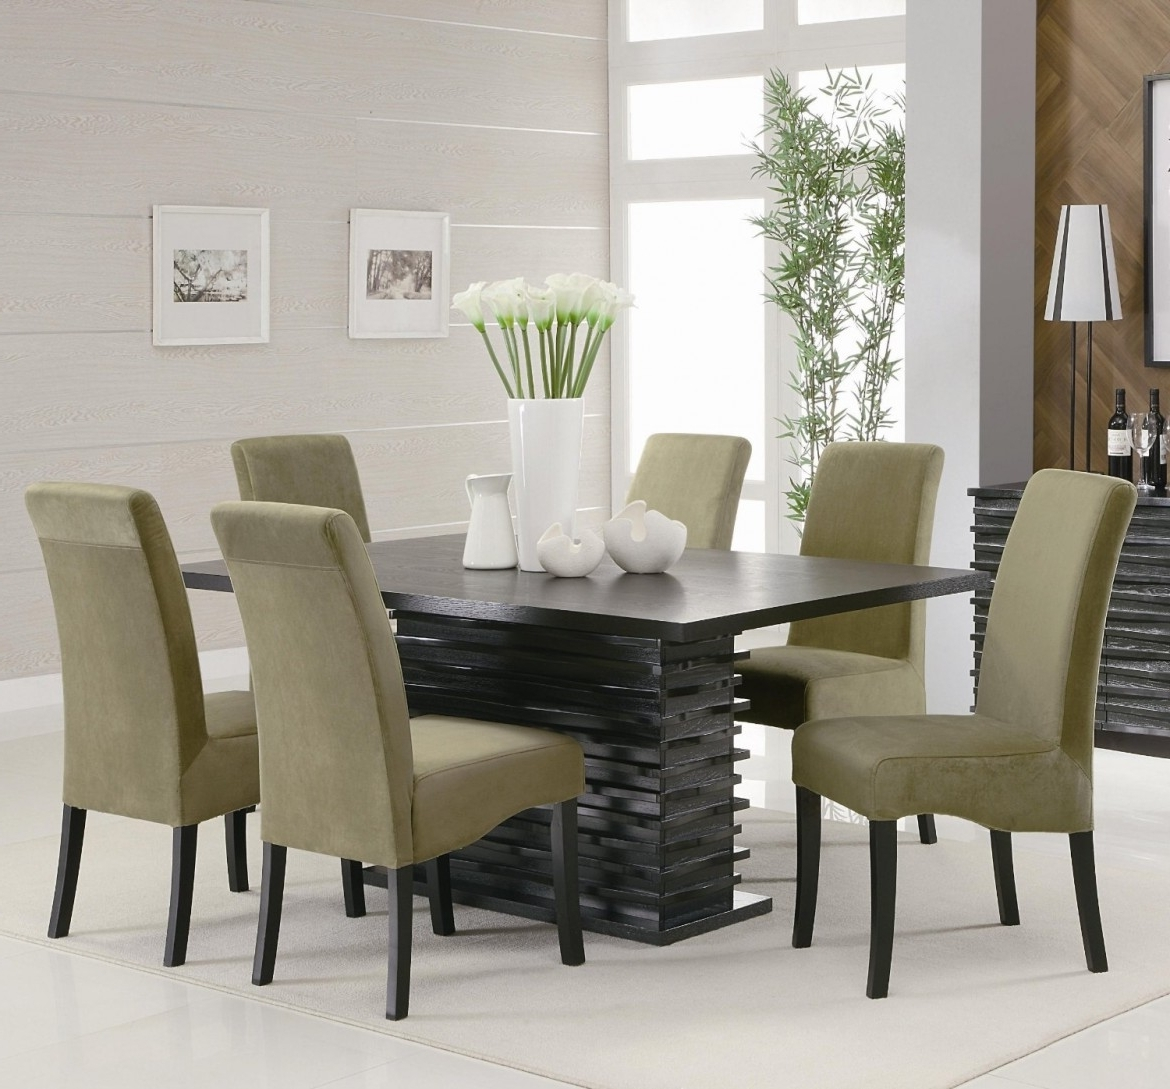 Well Known Contemporary Dining Tables Sets Inside Modern Dining Room With White Flower Vase And Rectangle Black Table (View 19 of 25)